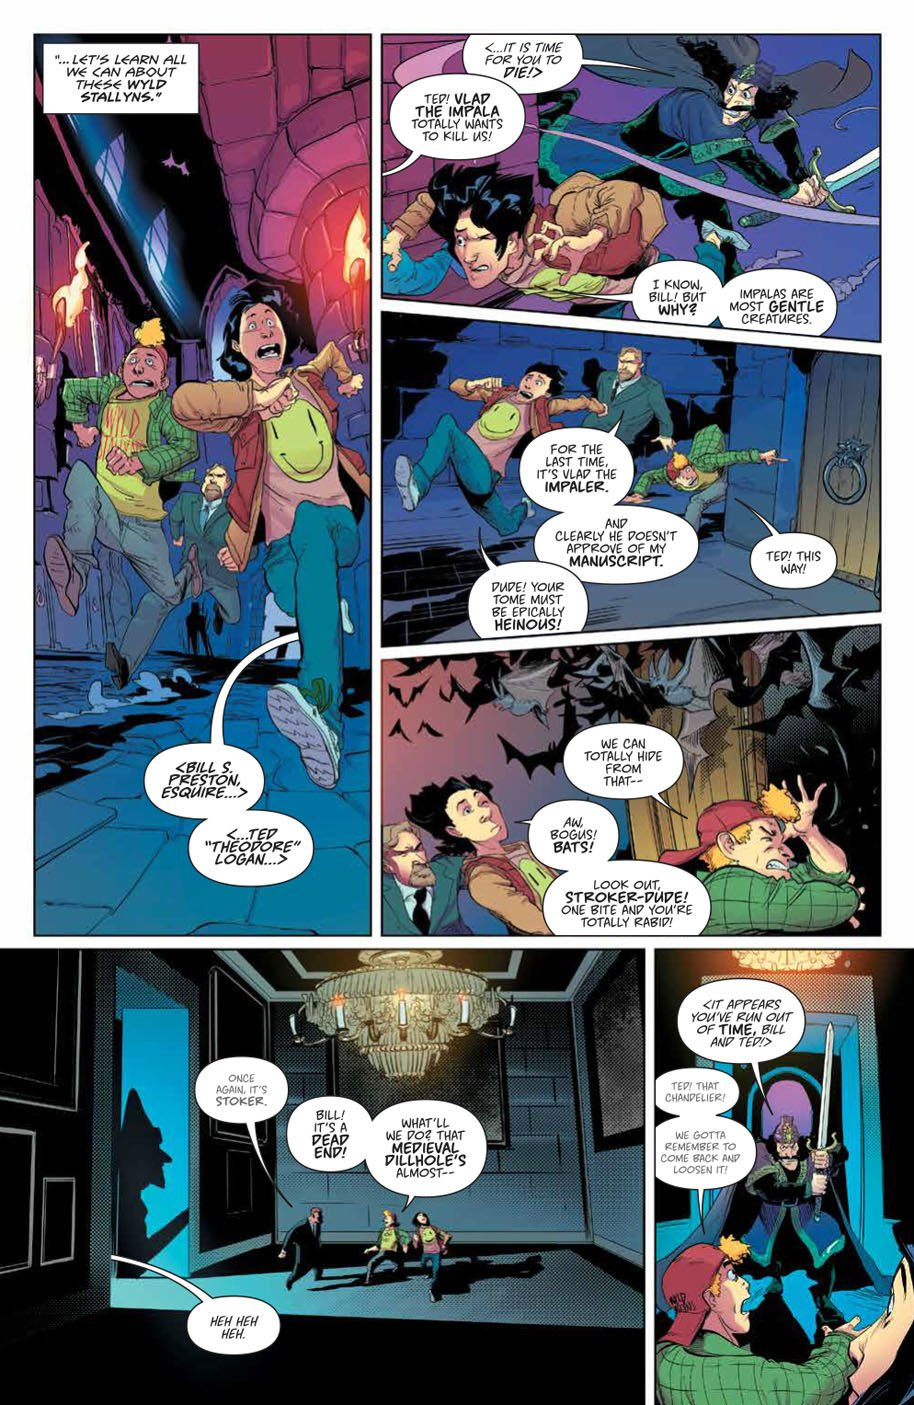 Bill & Ted Save the Universe 1 page 2